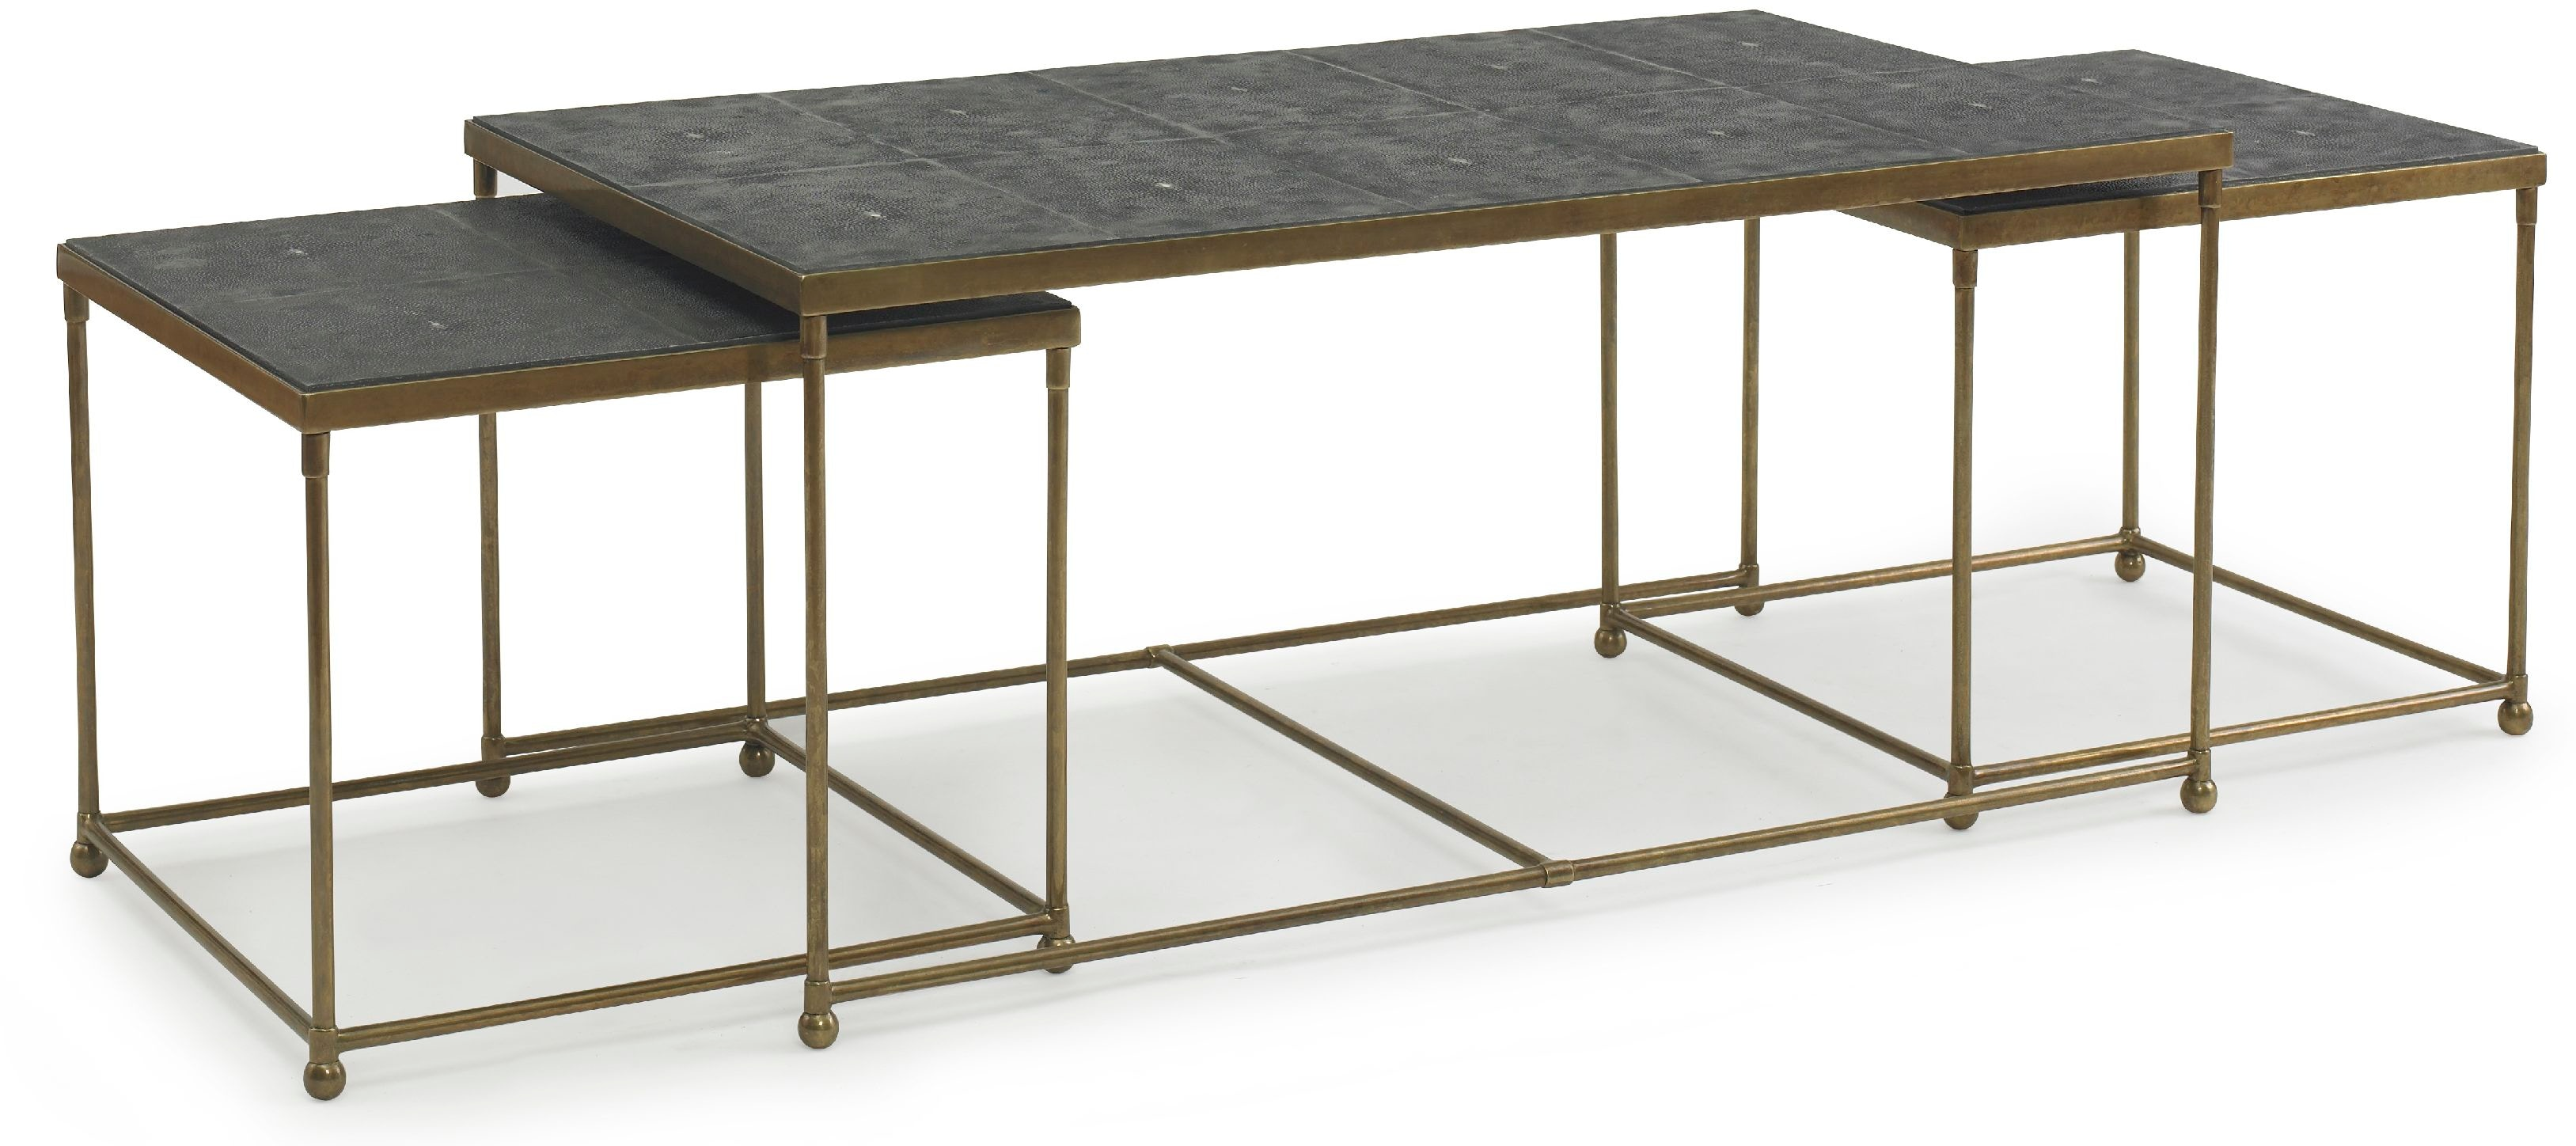 Kravet Brass Crystal Stone Cocktail Table OT801B C Kravet New